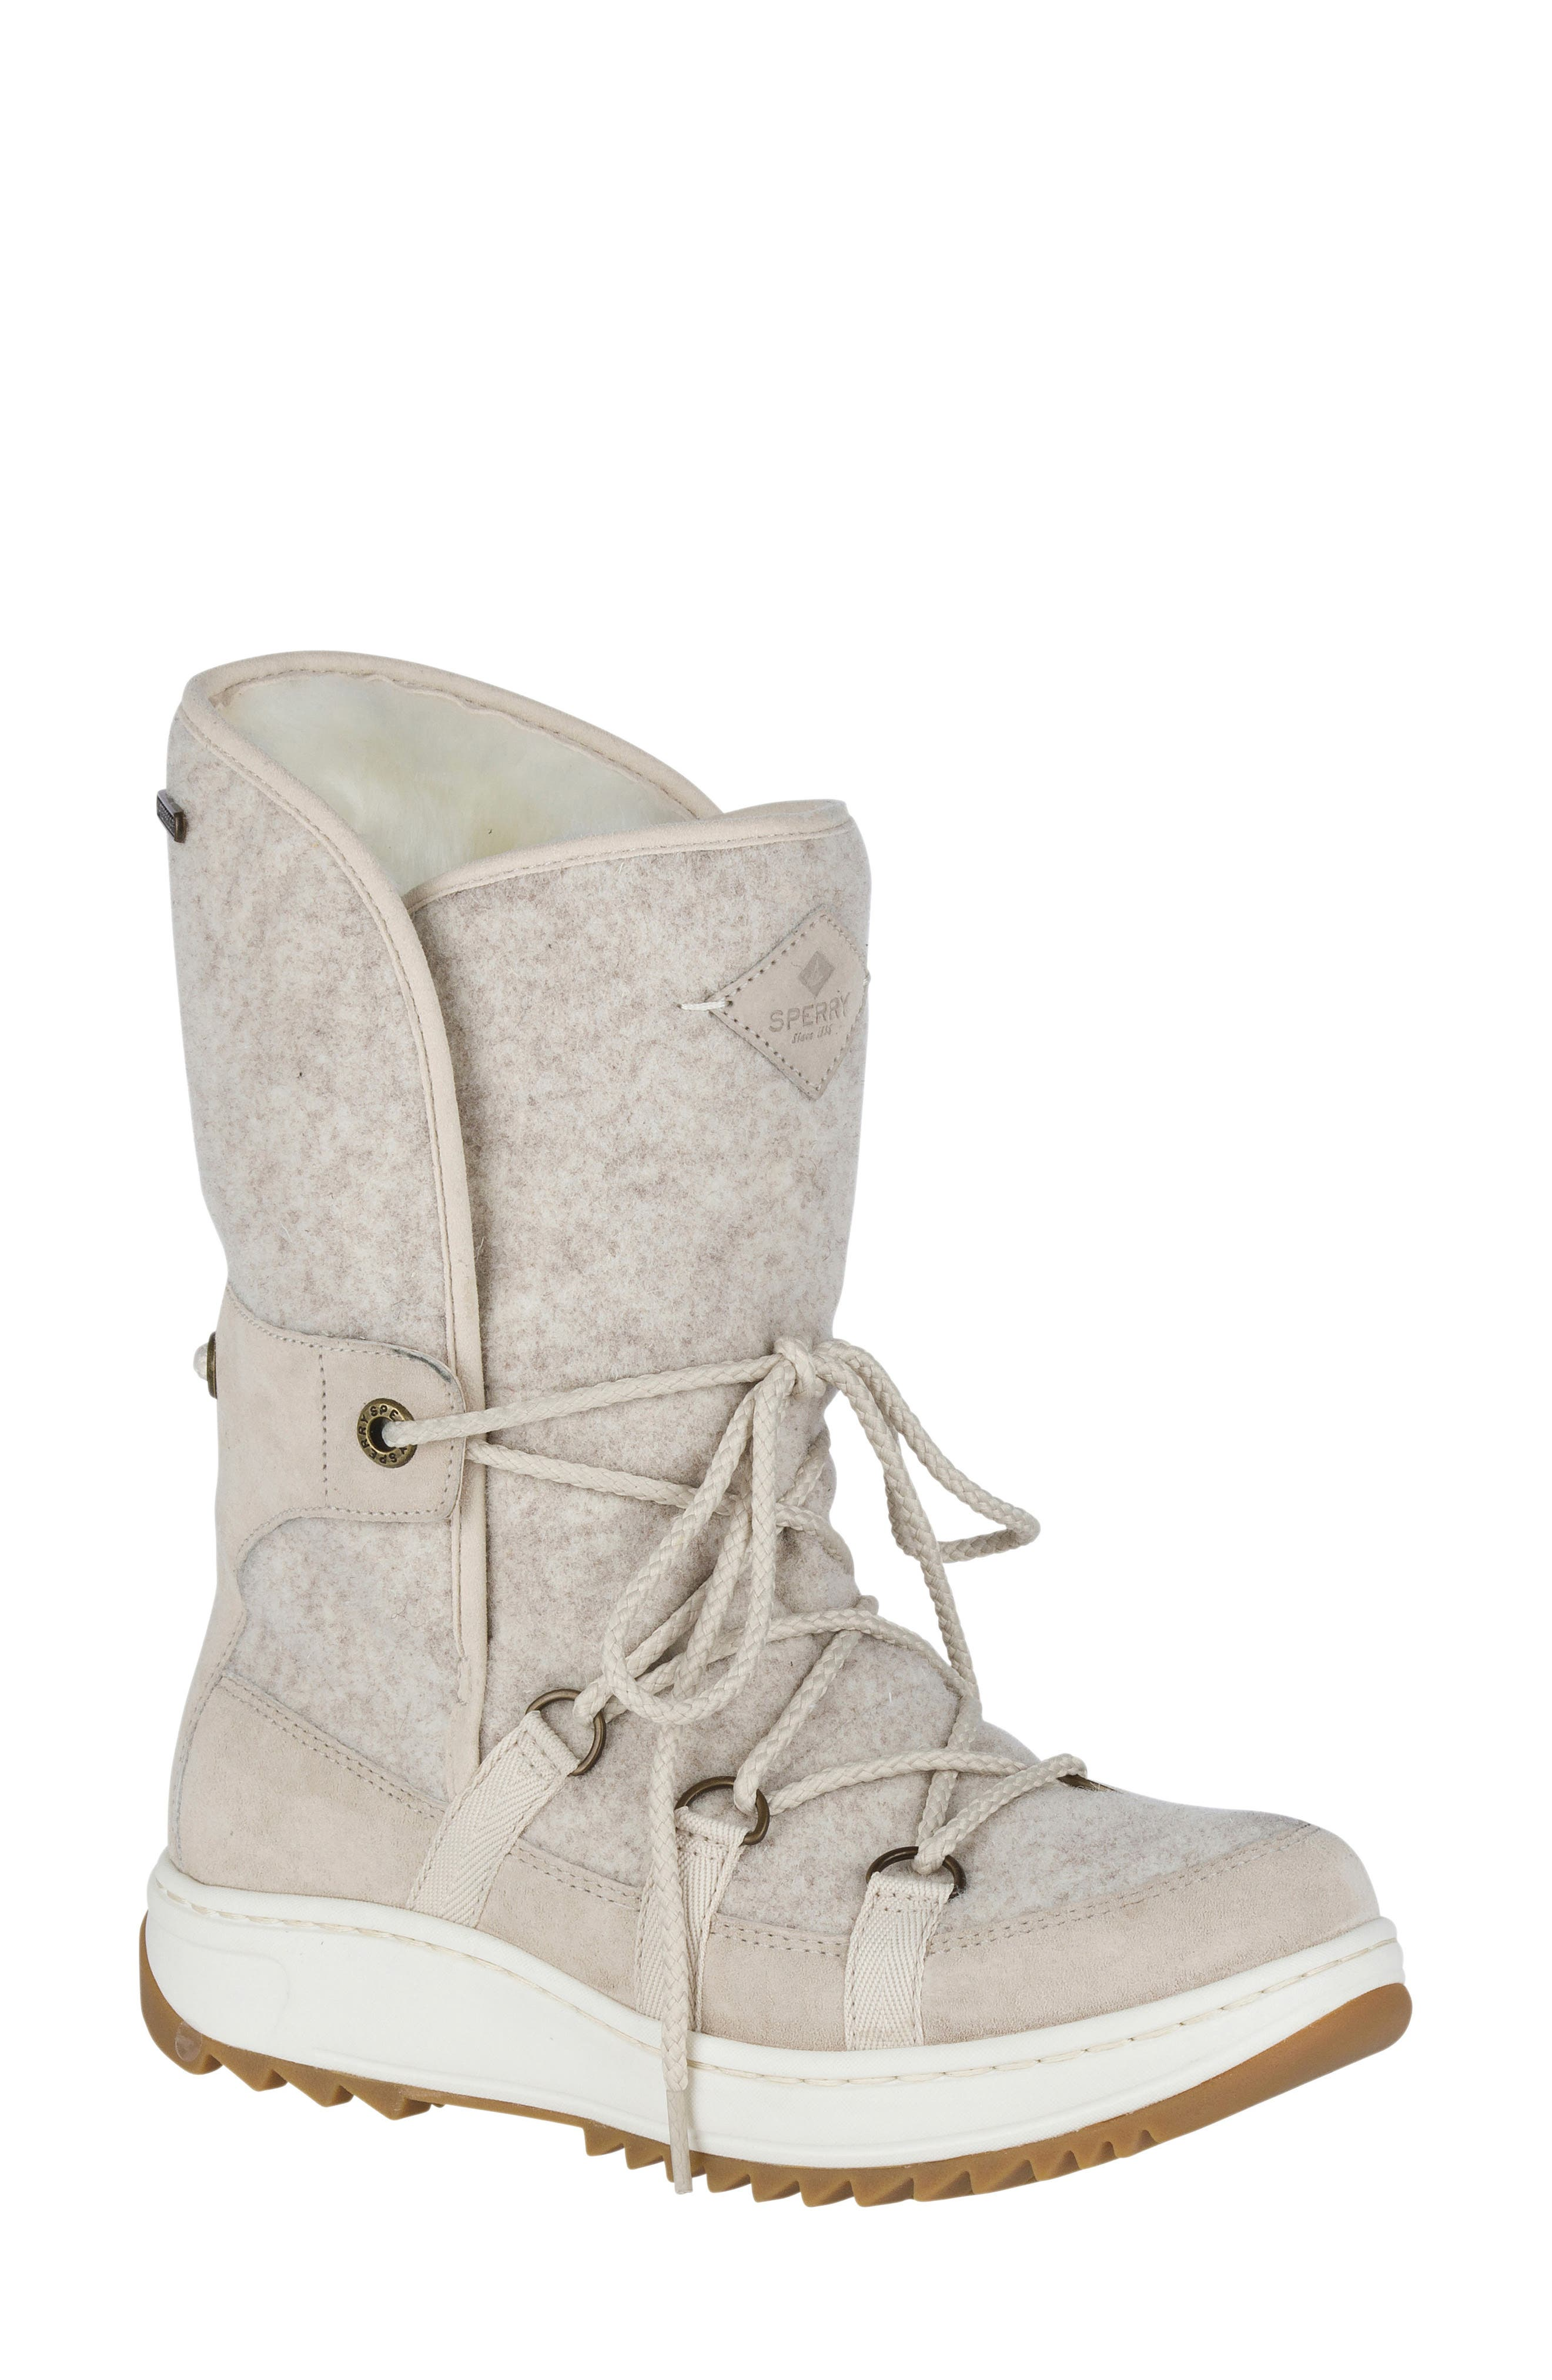 Powder Ice Cap Thinsulate Insulated Water Resistant Boot,                         Main,                         color, Ivory Suede